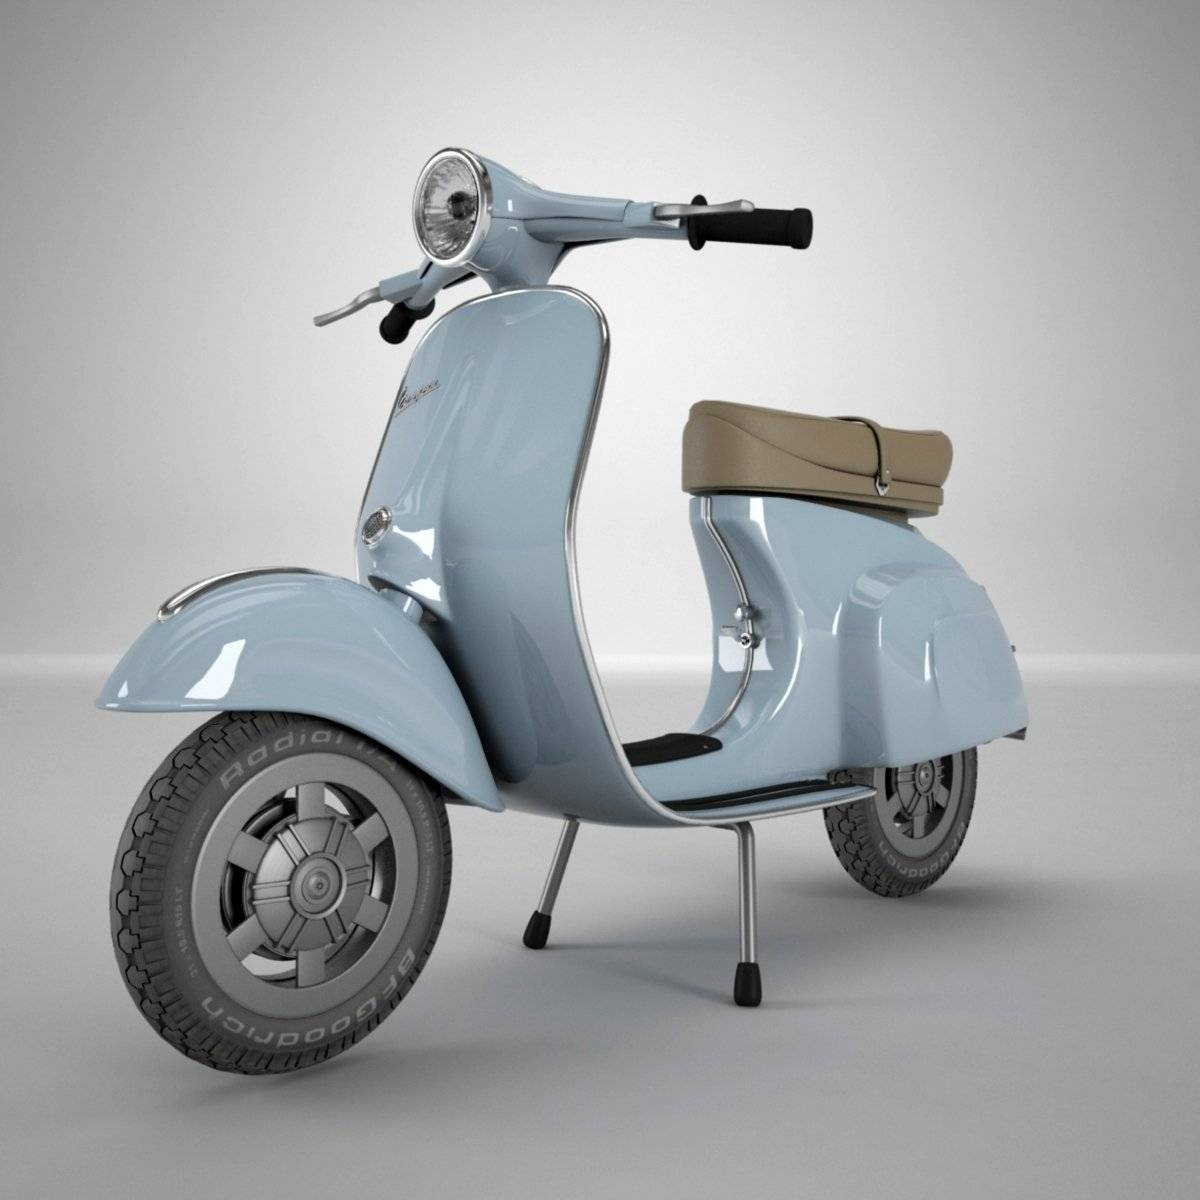 Vespa 3D Model In Motorcycle 3Dexport Intended For Latest Vespa 3D Wall Art (Gallery 5 of 20)